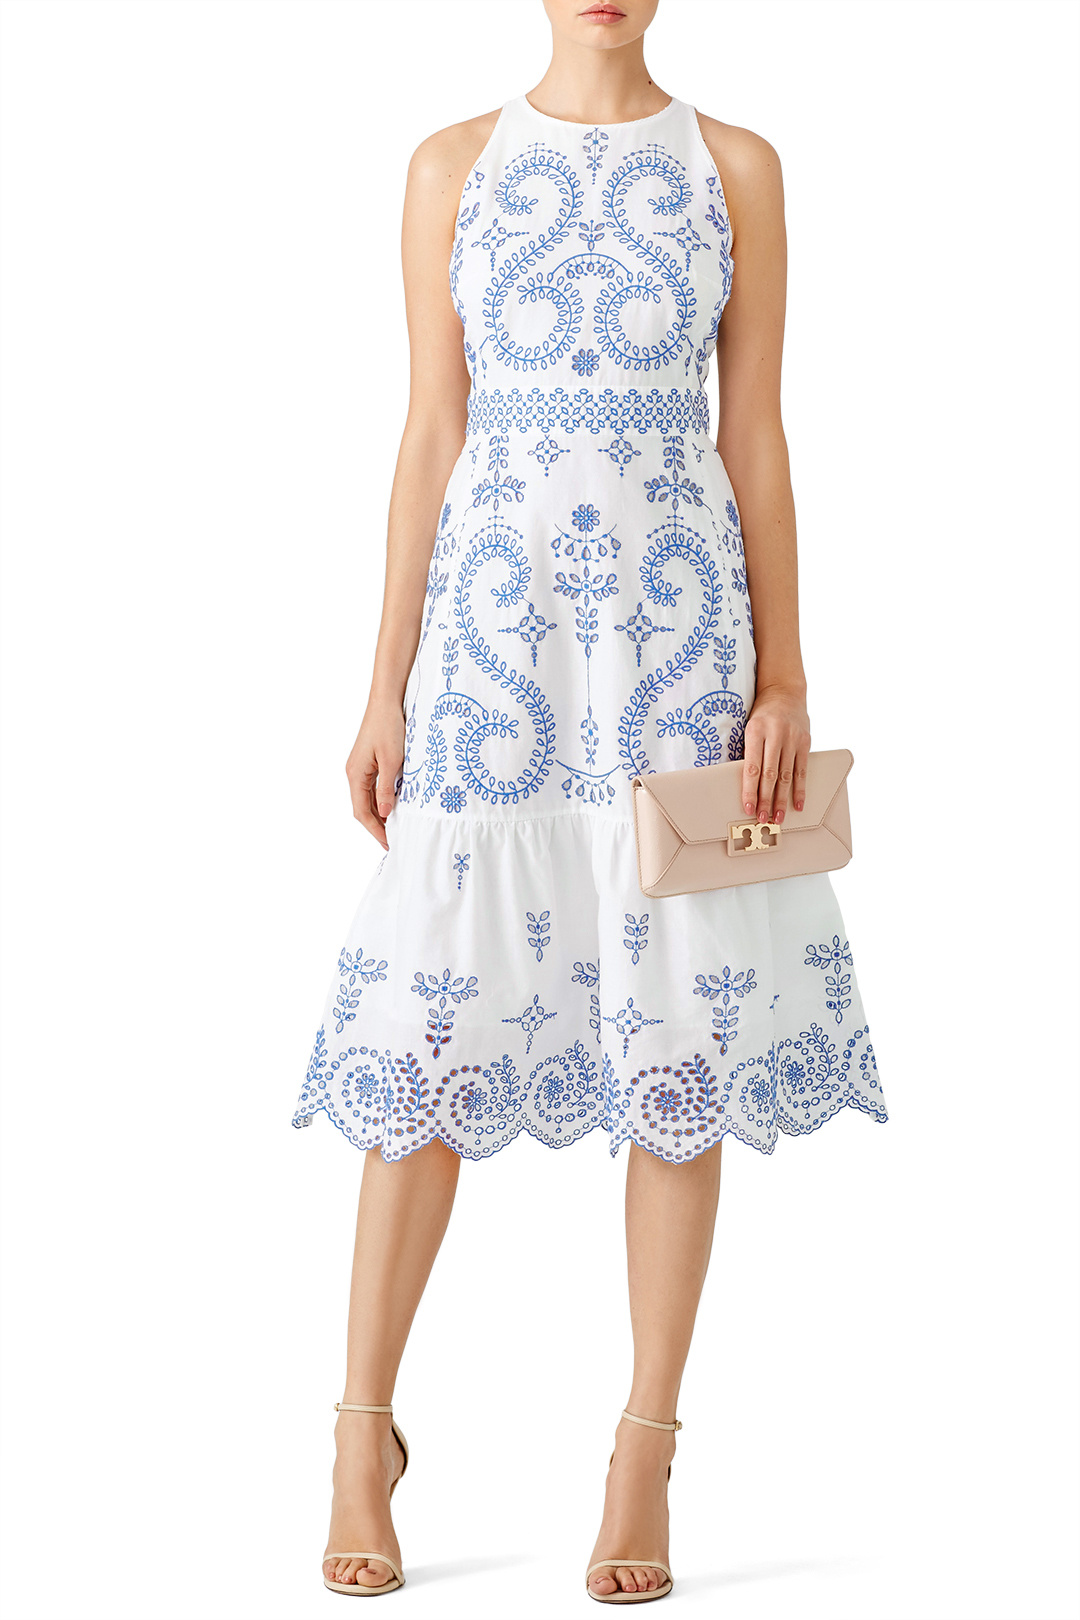 Tory Burch Floral Mariana Dress